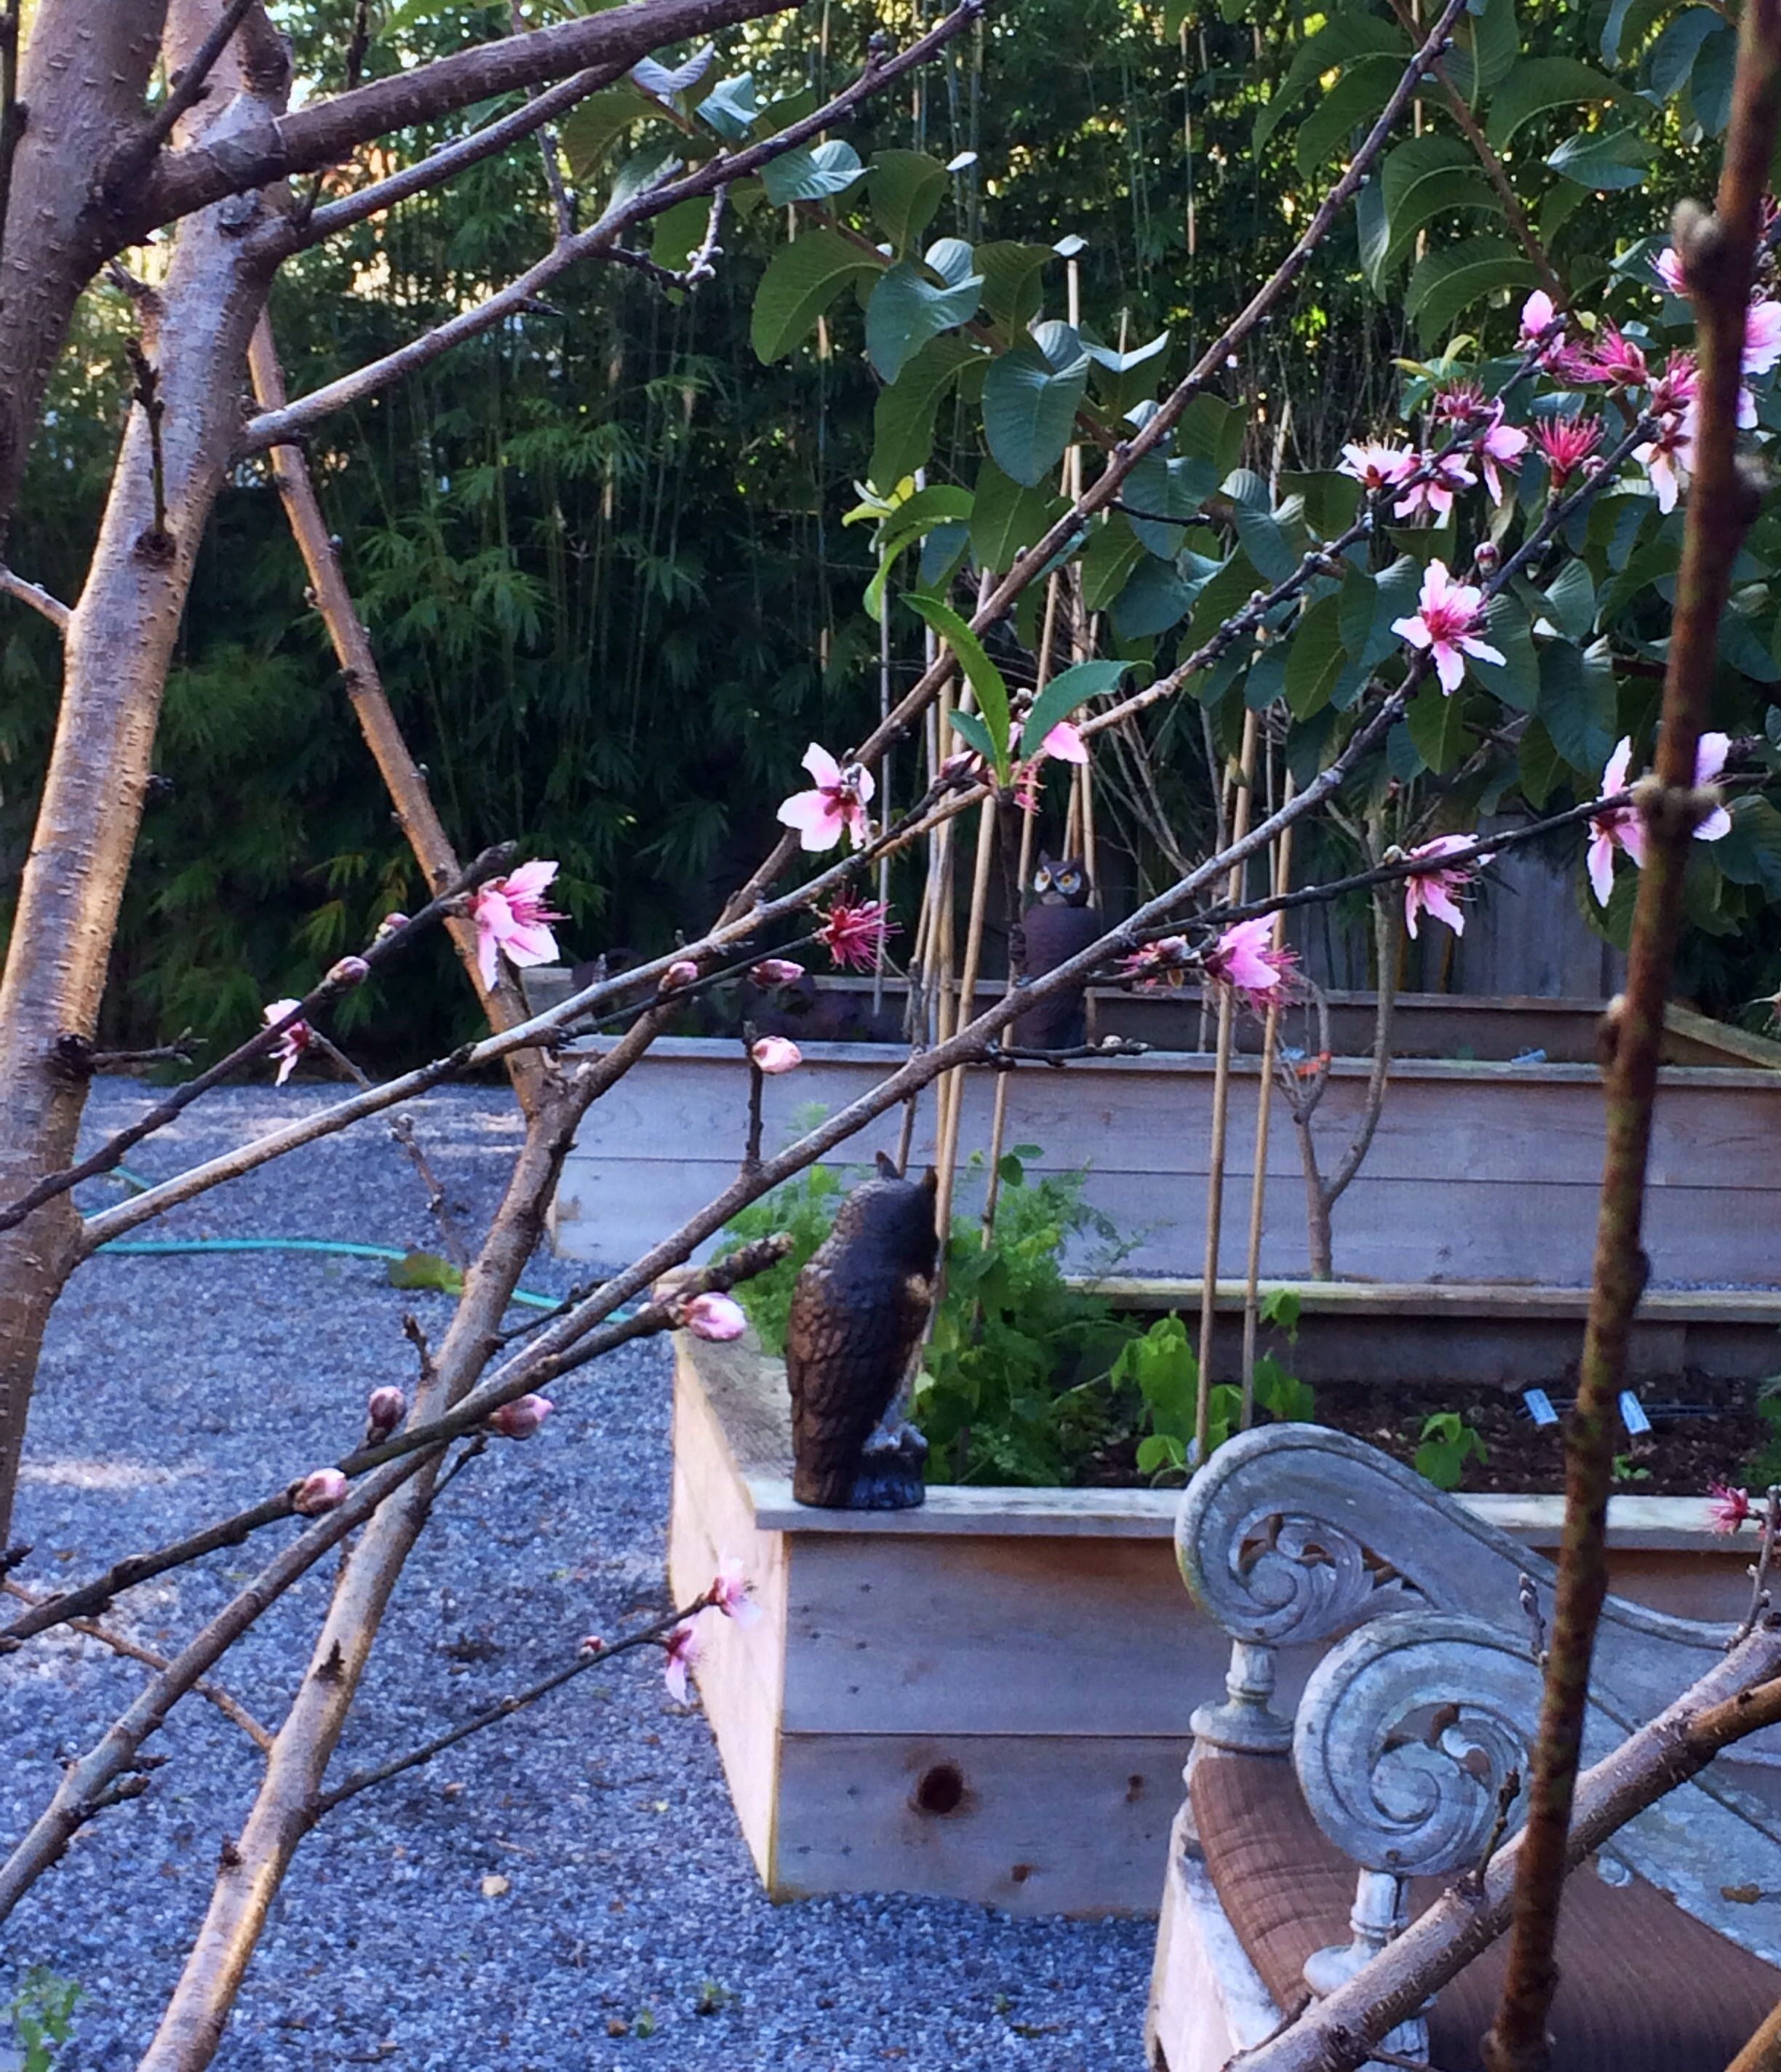 Winter in my garden. The peach trees make me very happy!